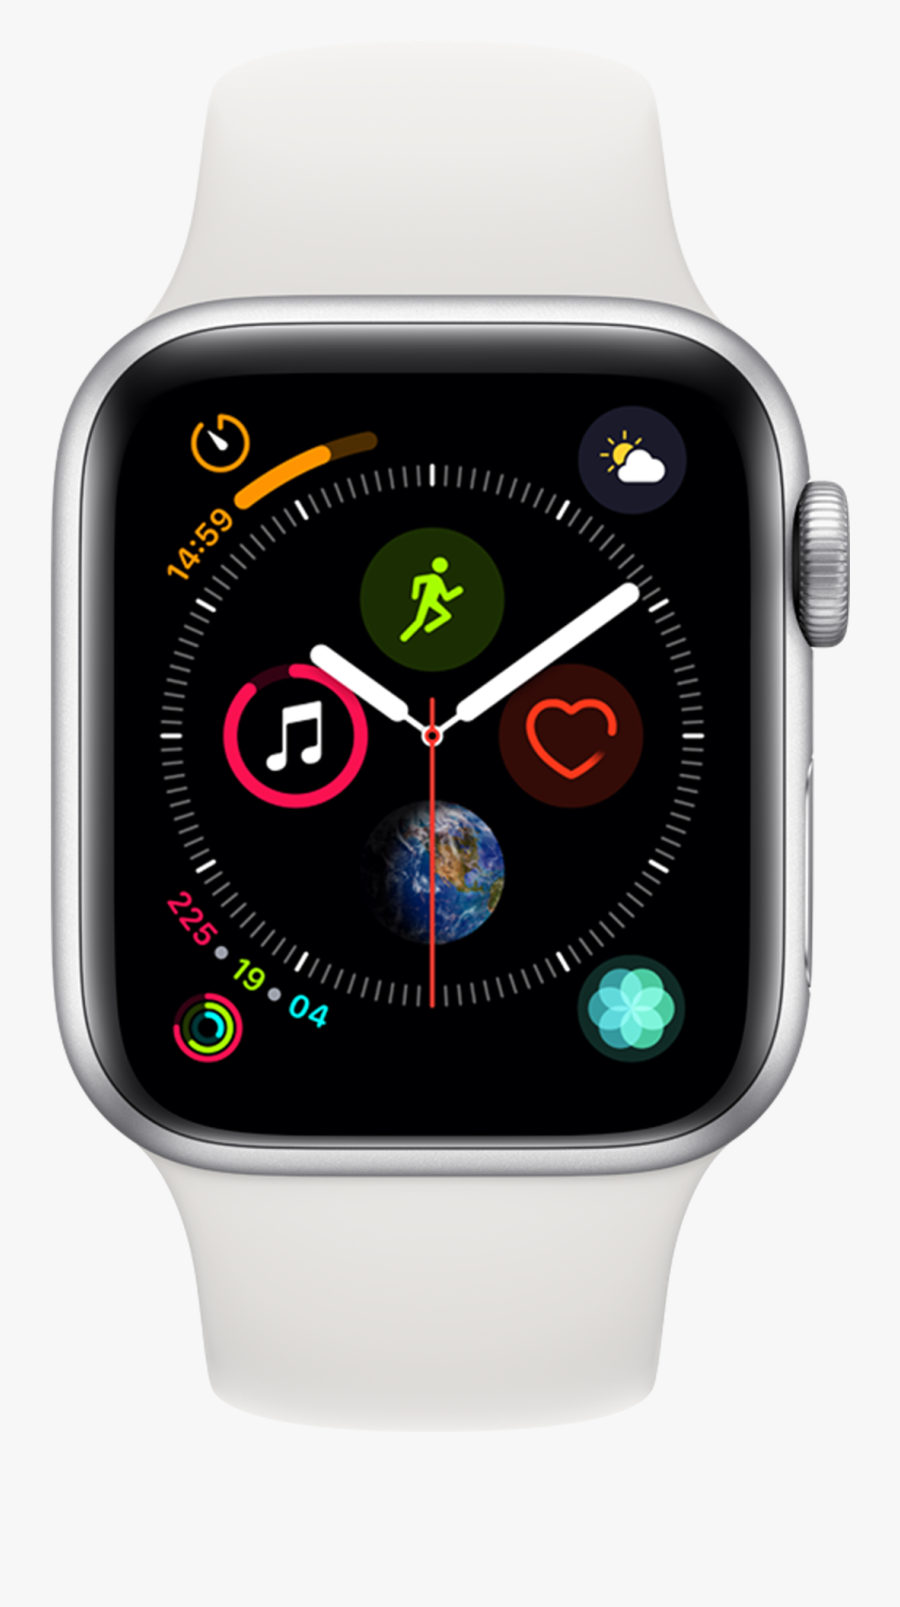 Watch,analog Accessory,fashion Accessory - Infographic Apple Watch Face, Transparent Clipart